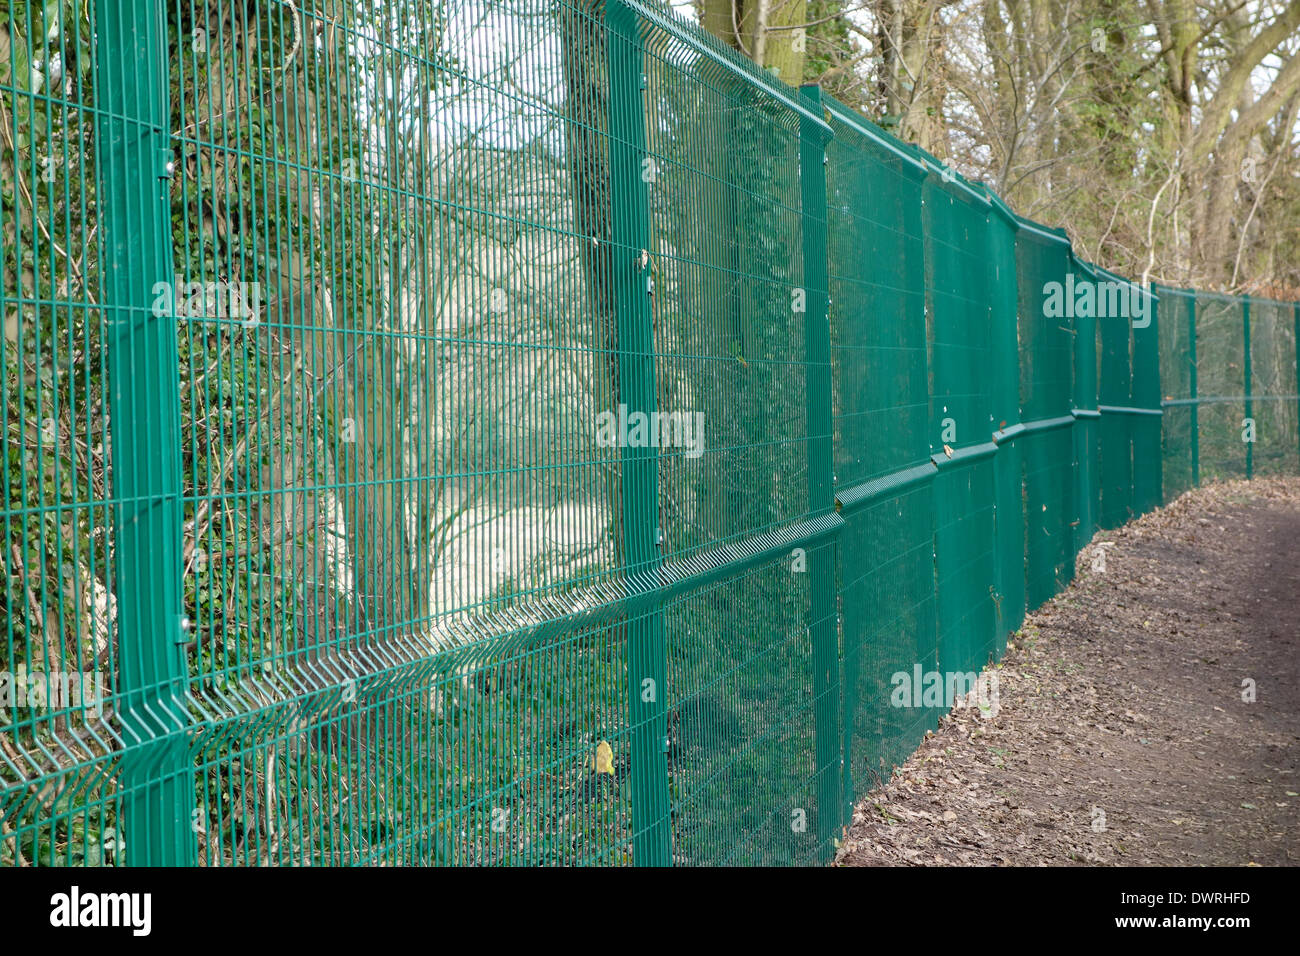 Green Wire Stock Photos & Green Wire Stock Images - Alamy